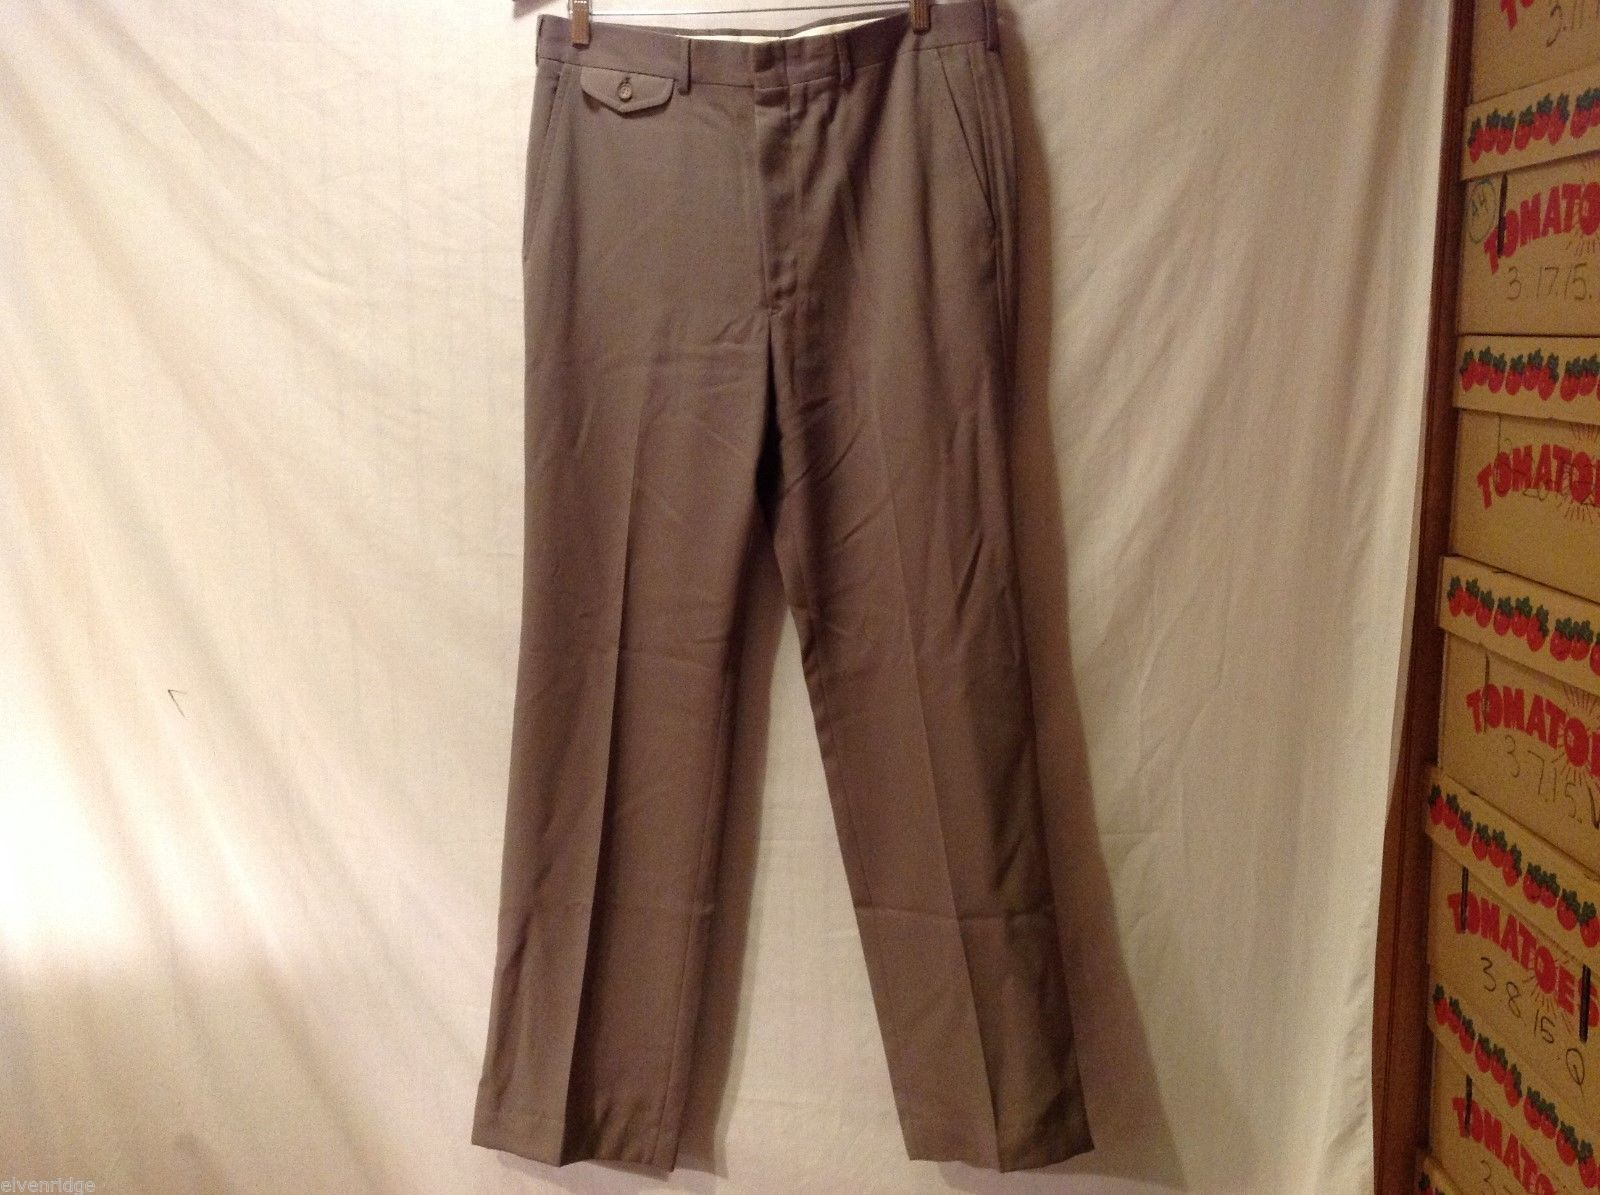 Mens Stanley Blacker an Dress Pants, No Size Indicated (See Measurements)